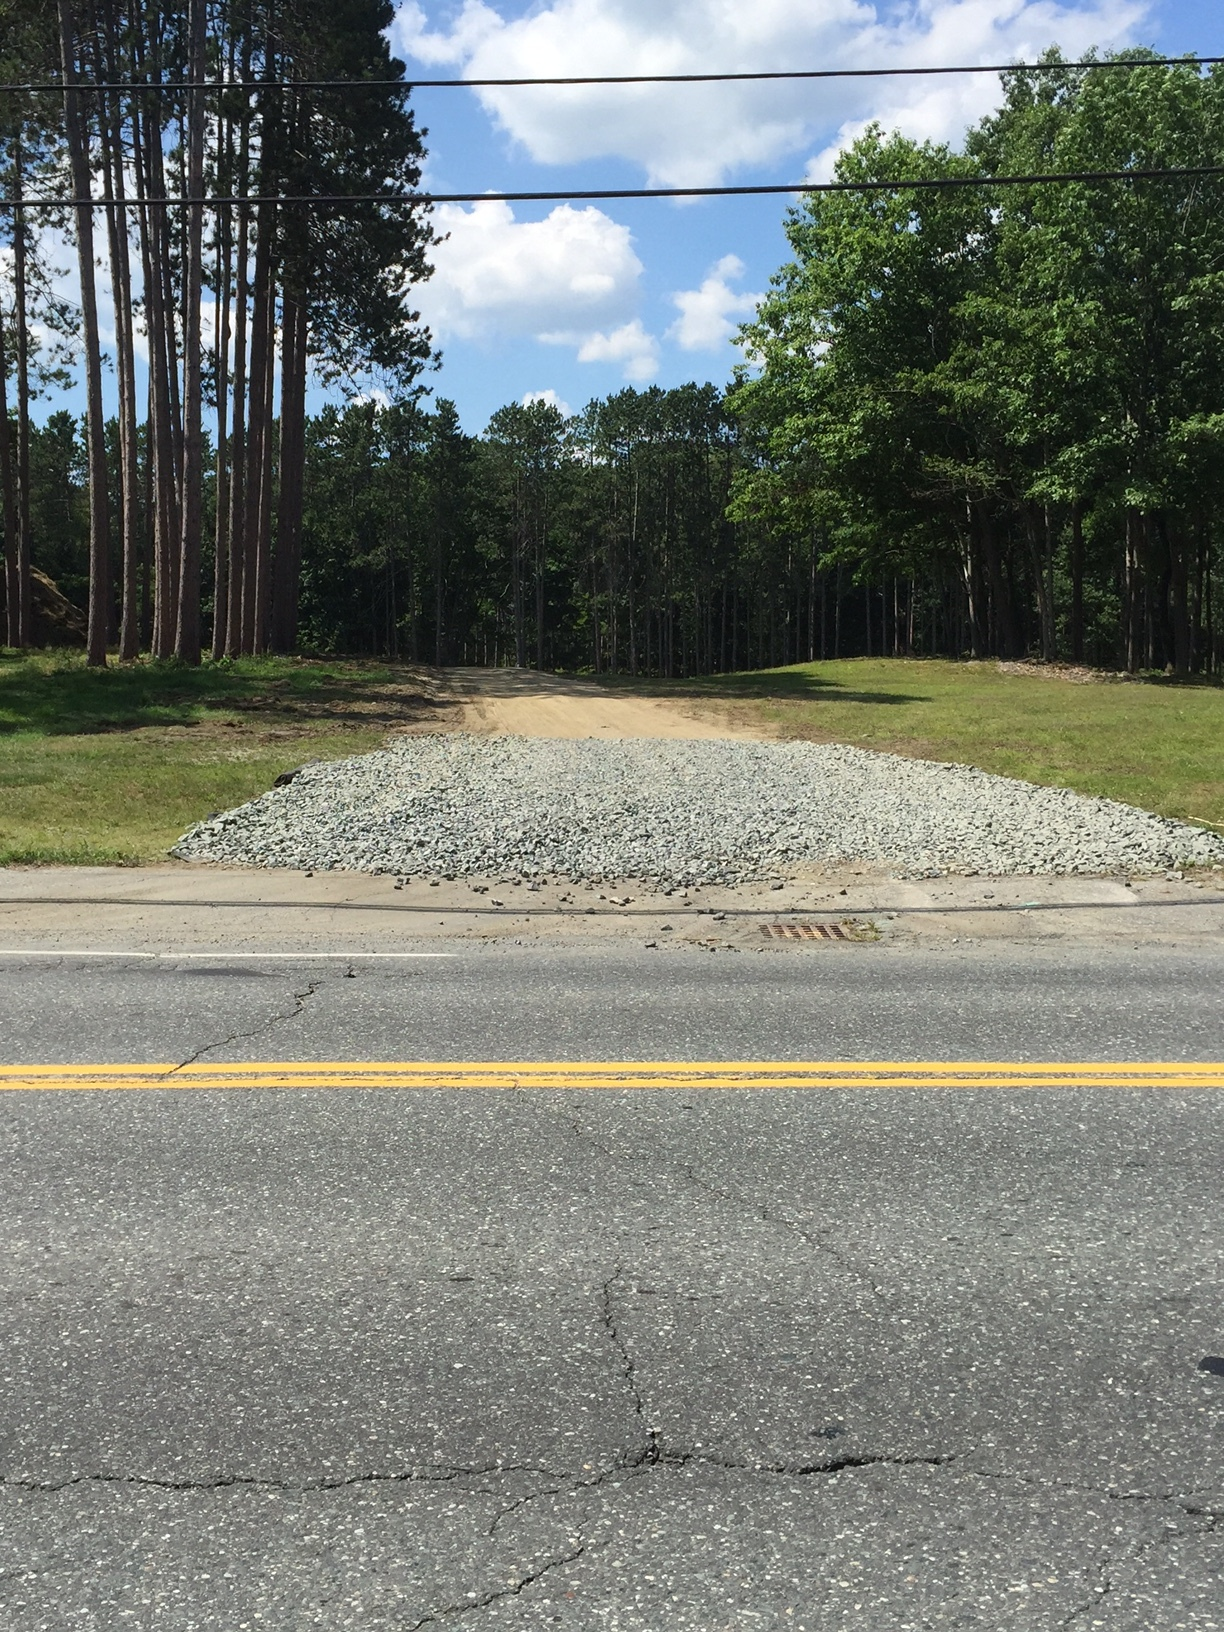 Note that the photo shows large rock on the haul road at the entrance.  This is good practice to reduce mud and dirt from truck tires as they enter public streets.